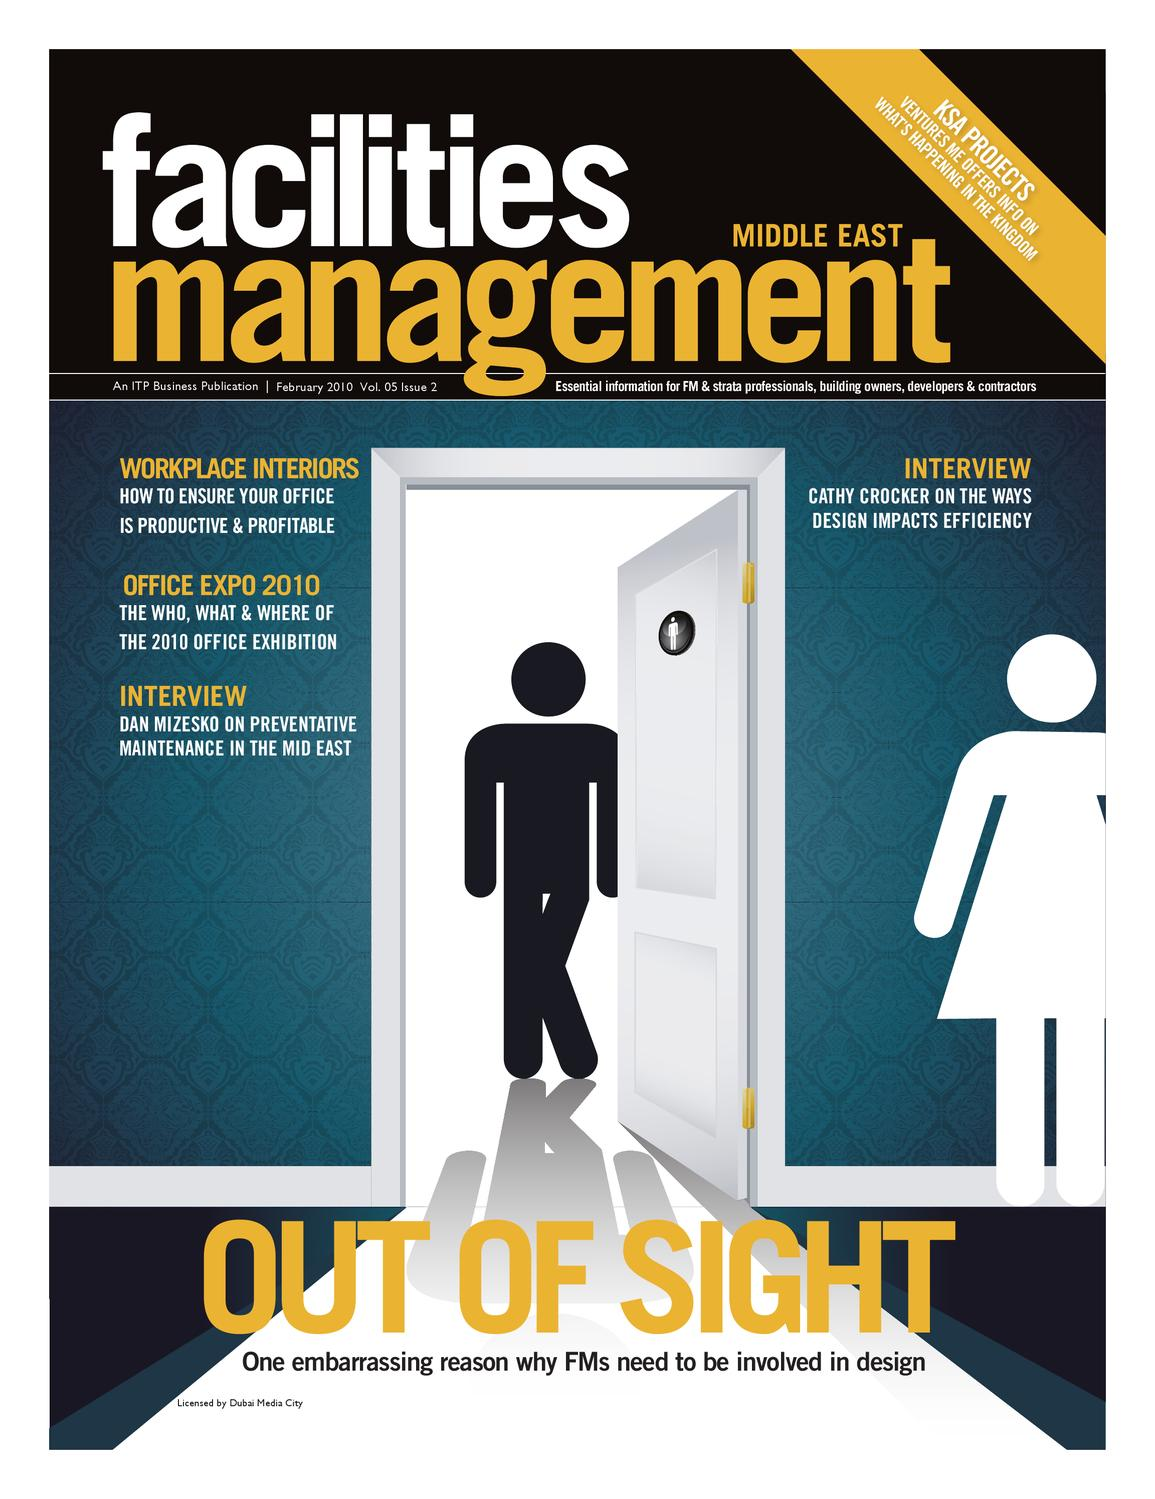 Facilities Management Middle East - Feb 2010 by ITP Business